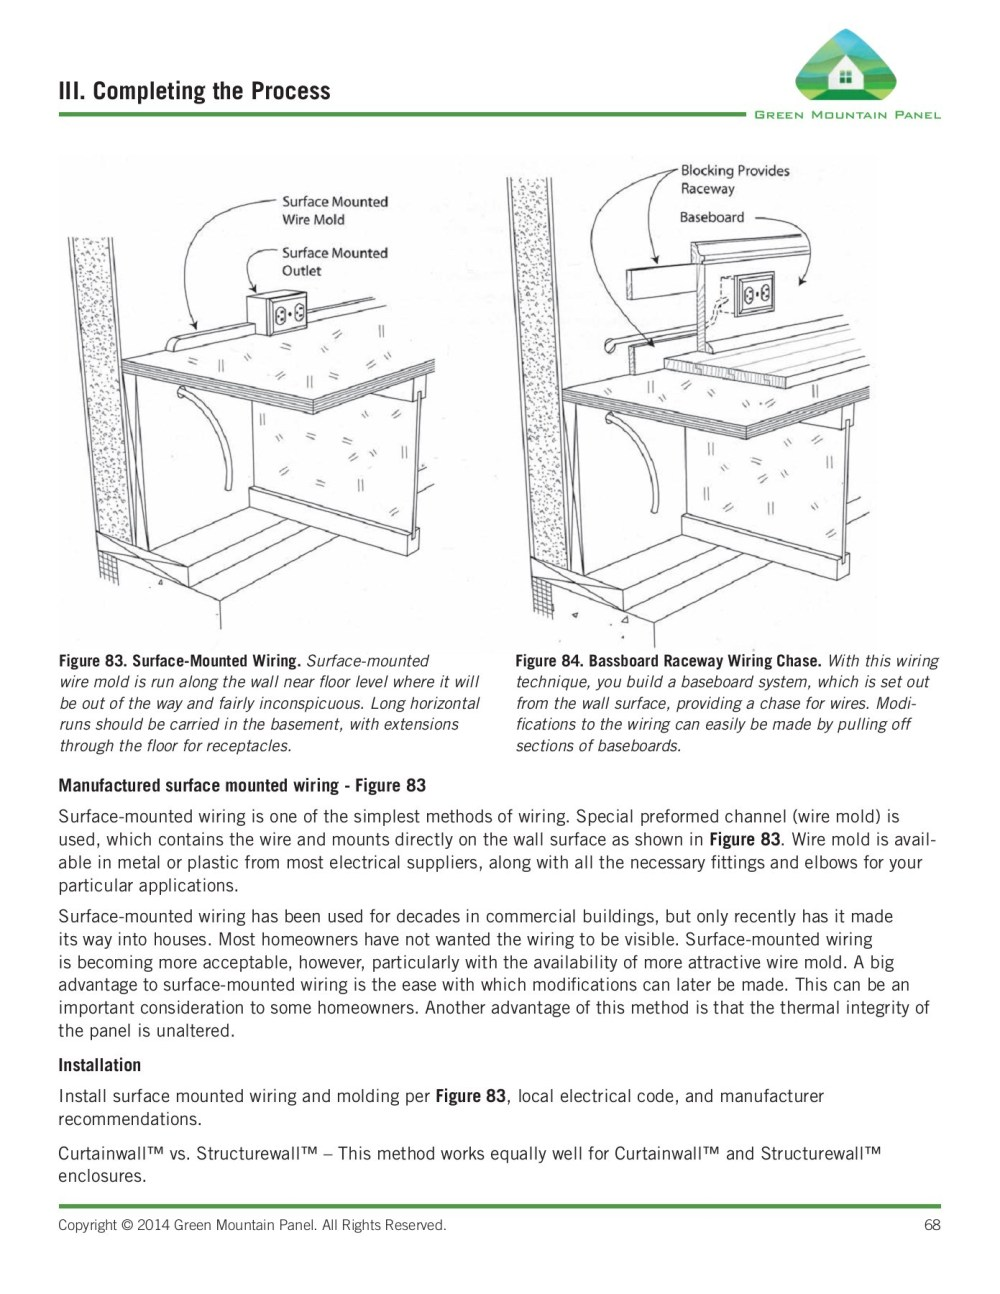 medium resolution of iii completing the process green mountain panel pages 1 6 text version fliphtml5